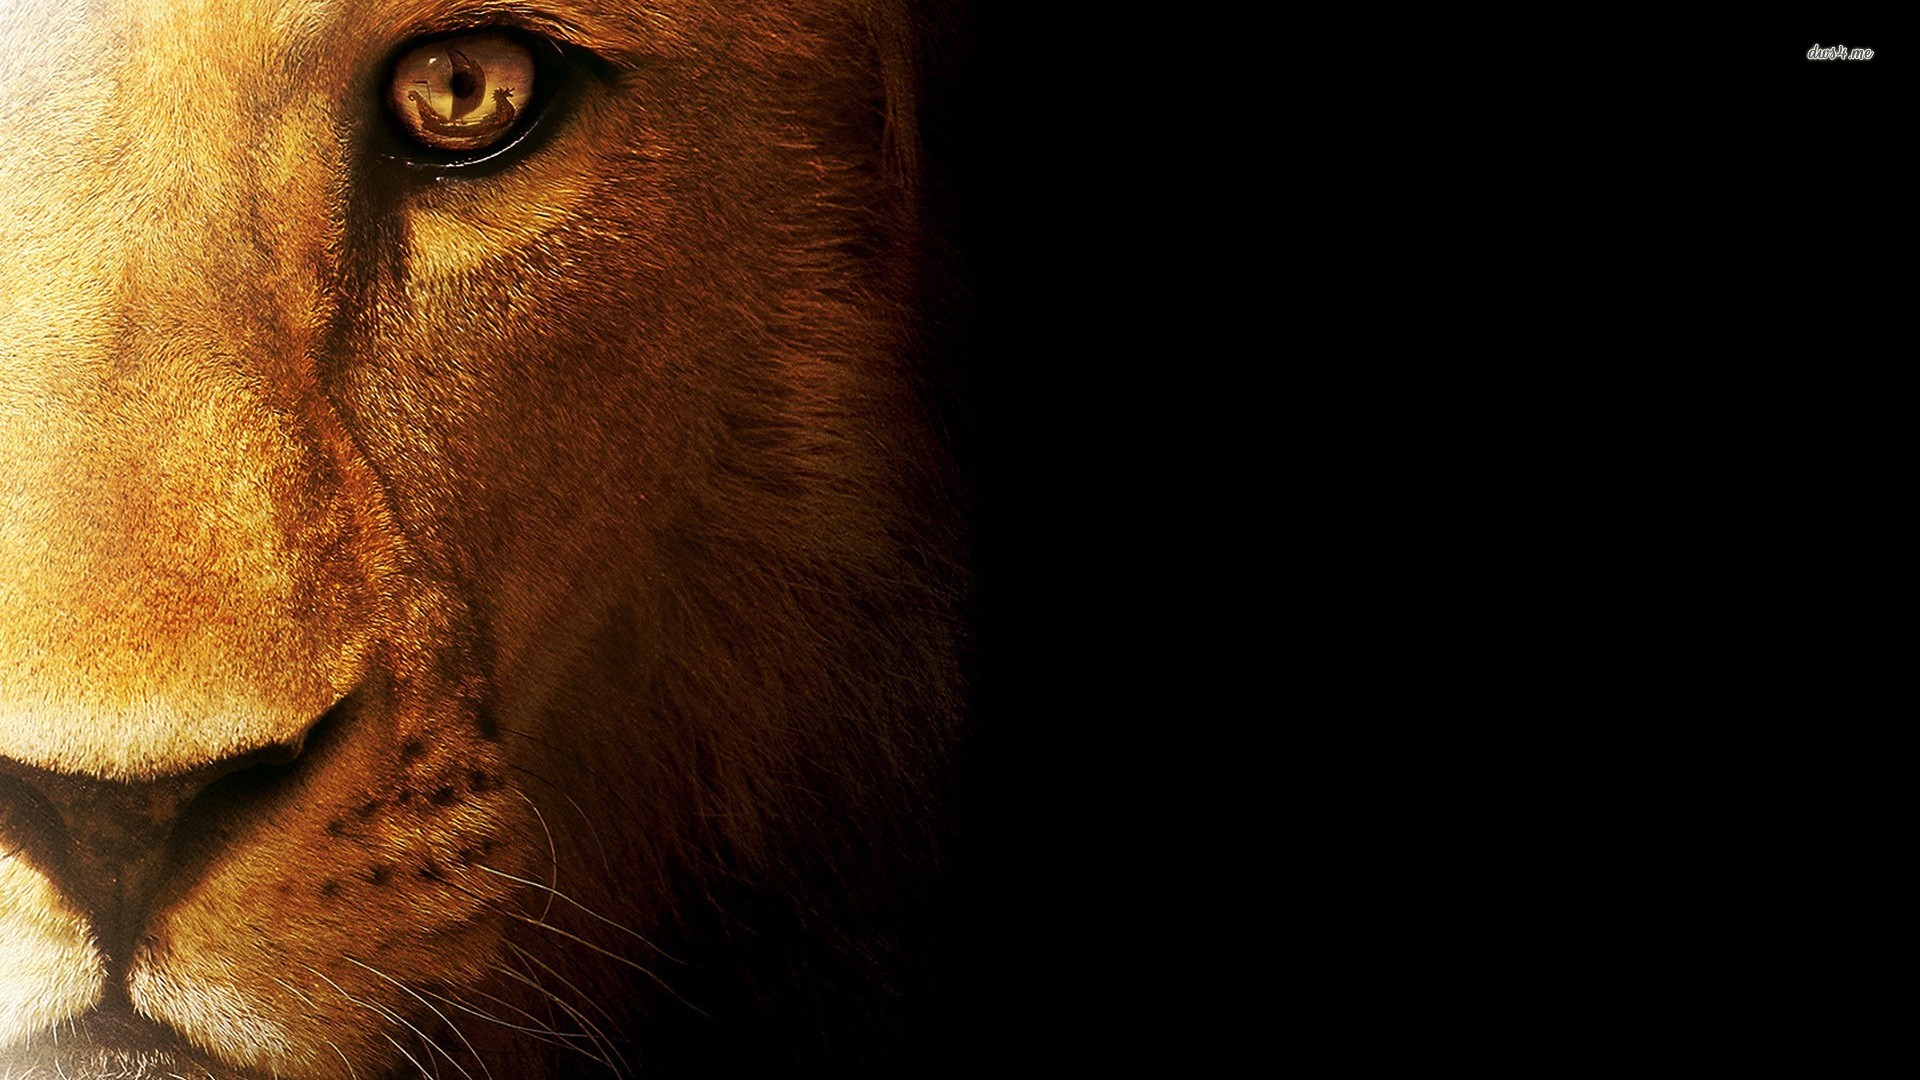 Lion Hd Wallpapers Backgrounds Wallpaper 1920 1080 Picture: Lion Bravery Quotes Wallpaper. QuotesGram